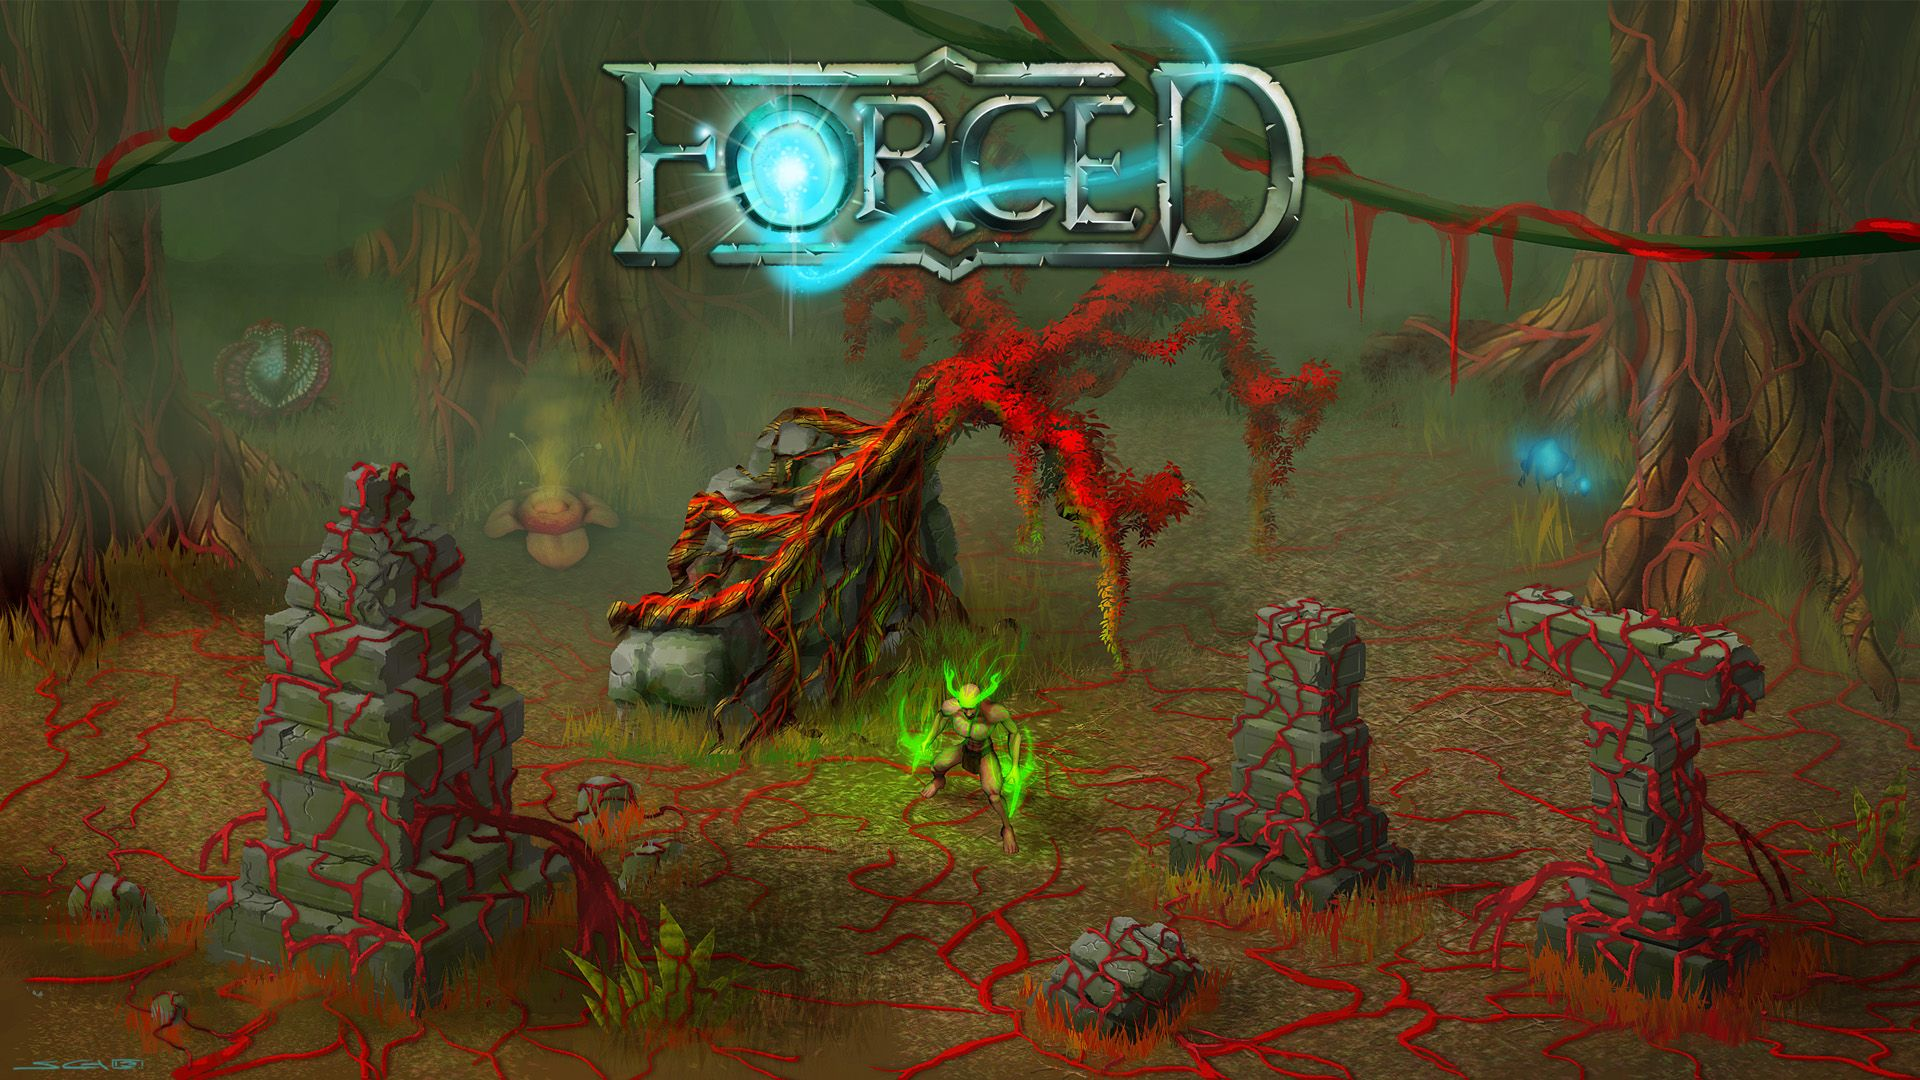 FORCED Confirmed for Xbox One Xbox one, Xbox, Video game